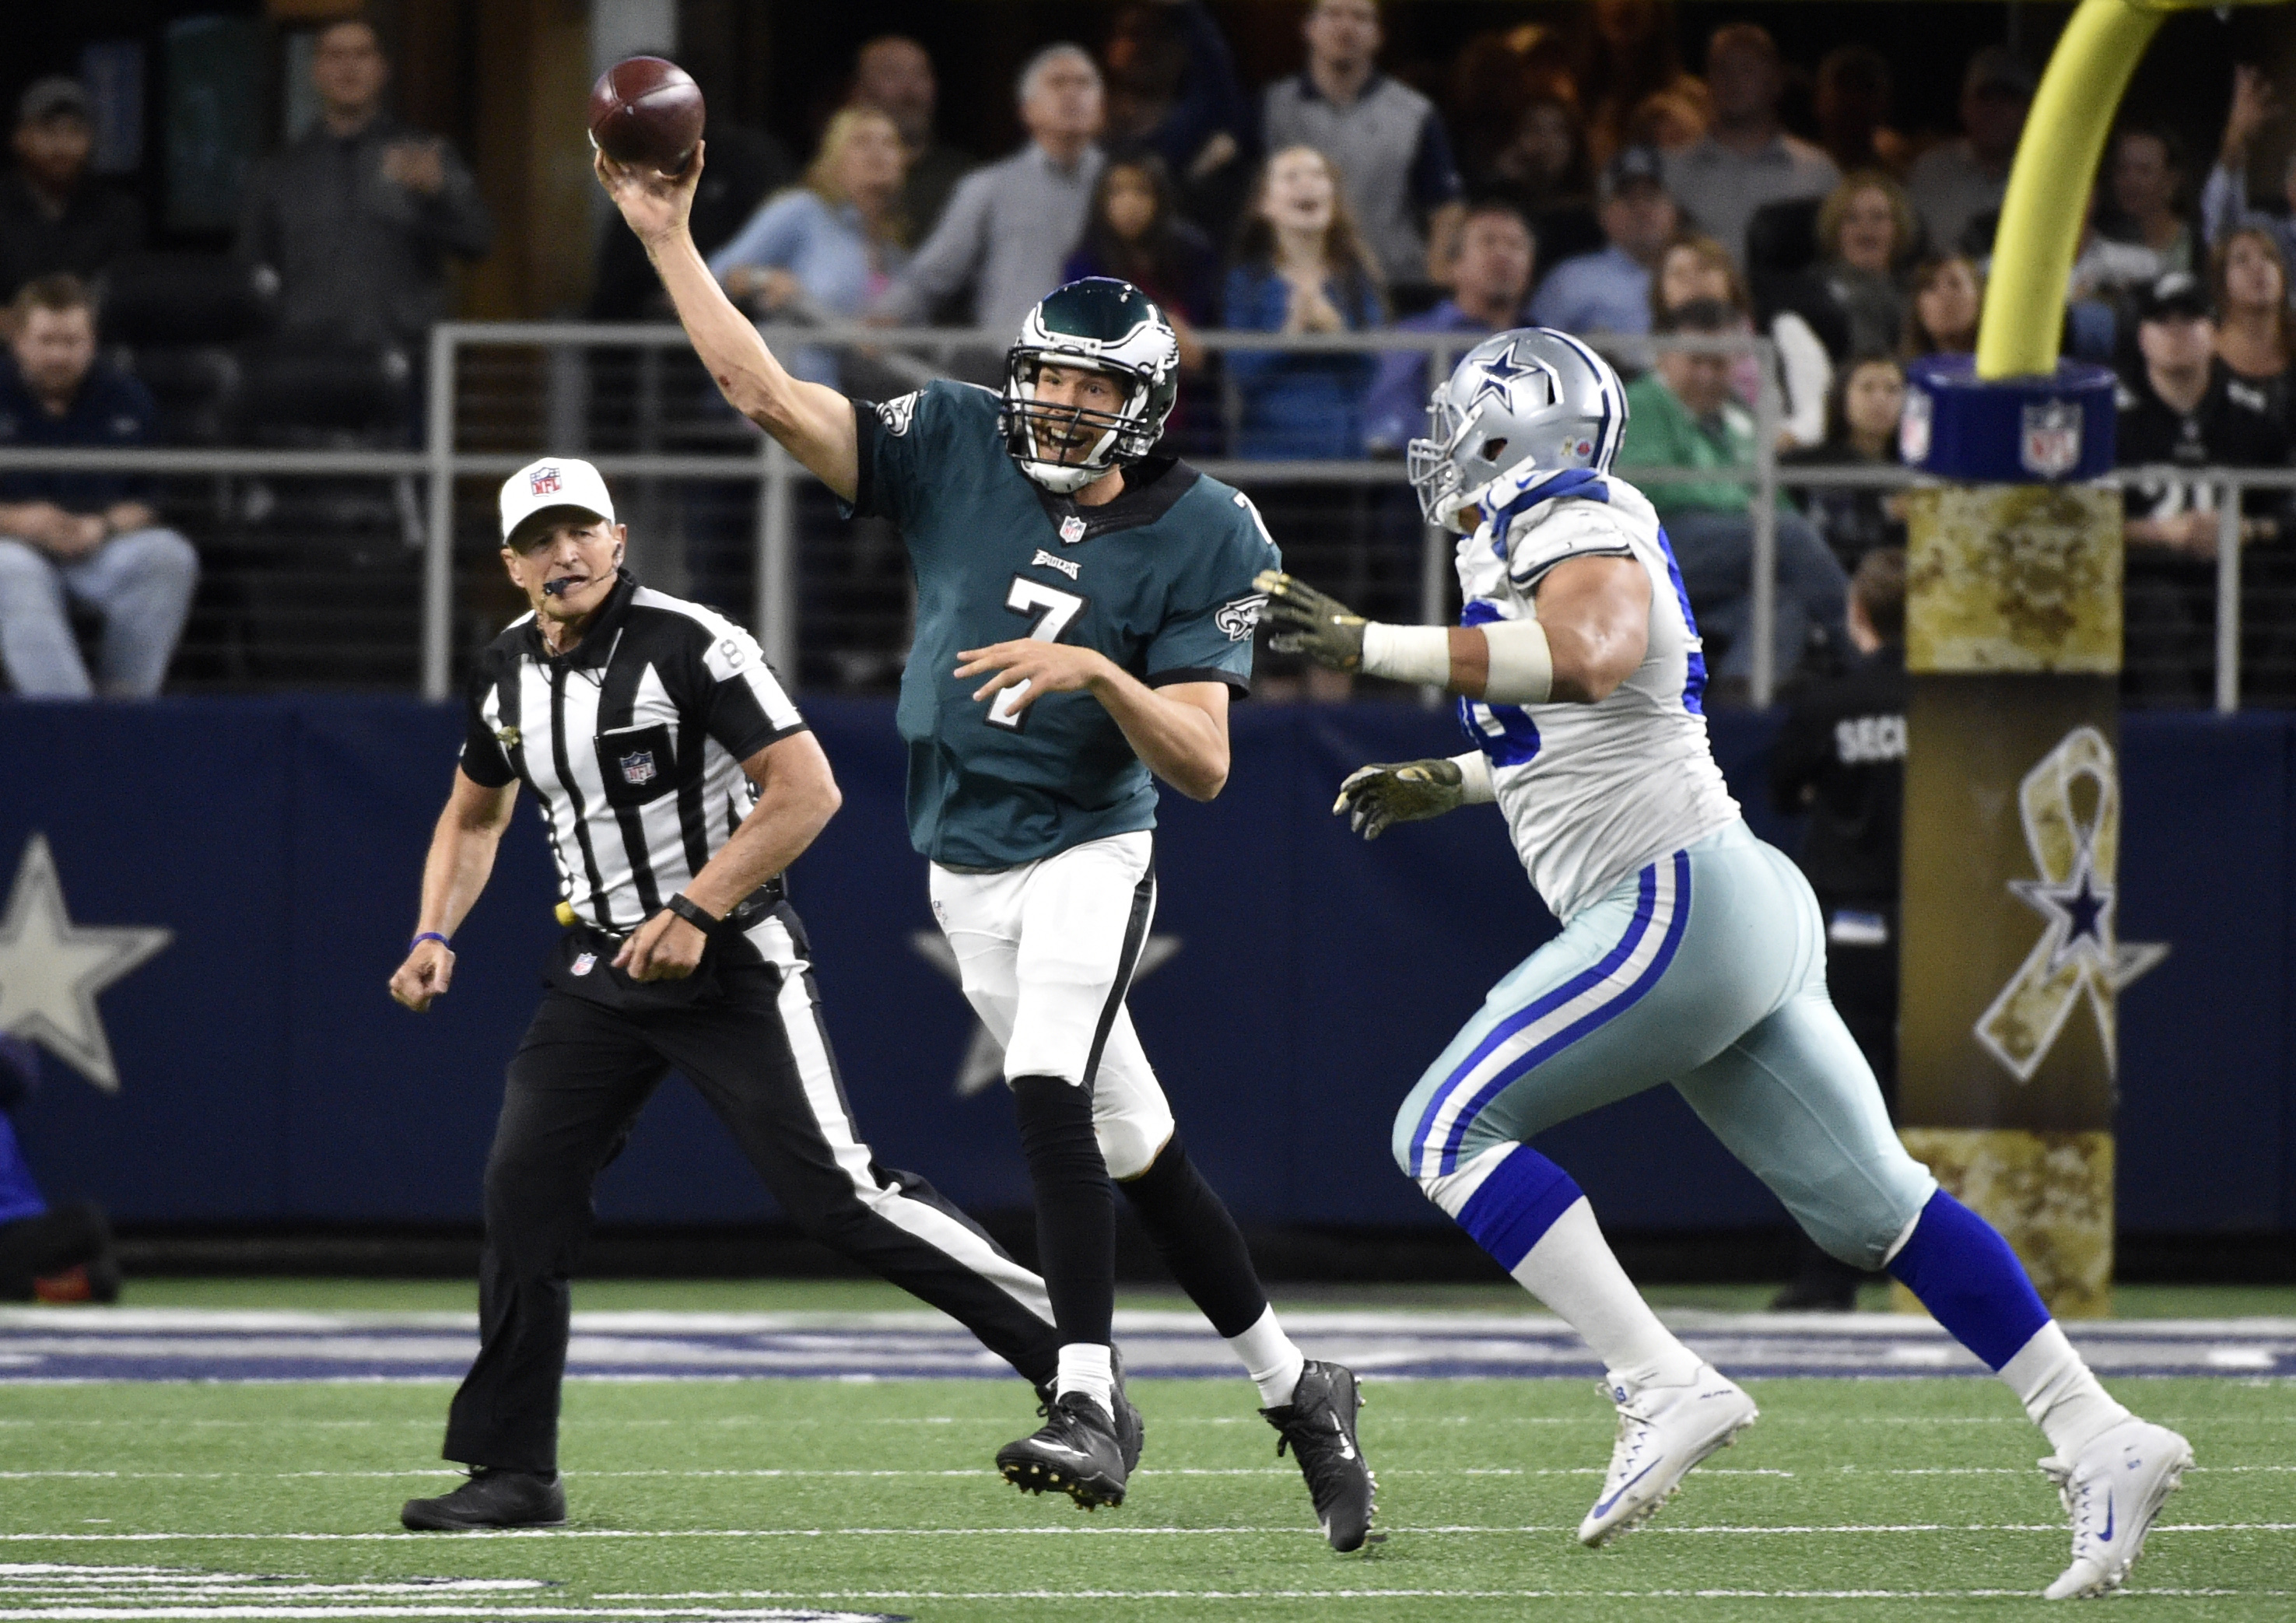 Philadelphia Eagles' Sam Bradford (7) throws a pass as Dallas Cowboys defensive tackle Tyrone Crawford defends in the second half of an NFL football game Sunday, Nov. 8, 2015, in Arlington, Texas. (AP Photo/Michael Ainsworth)